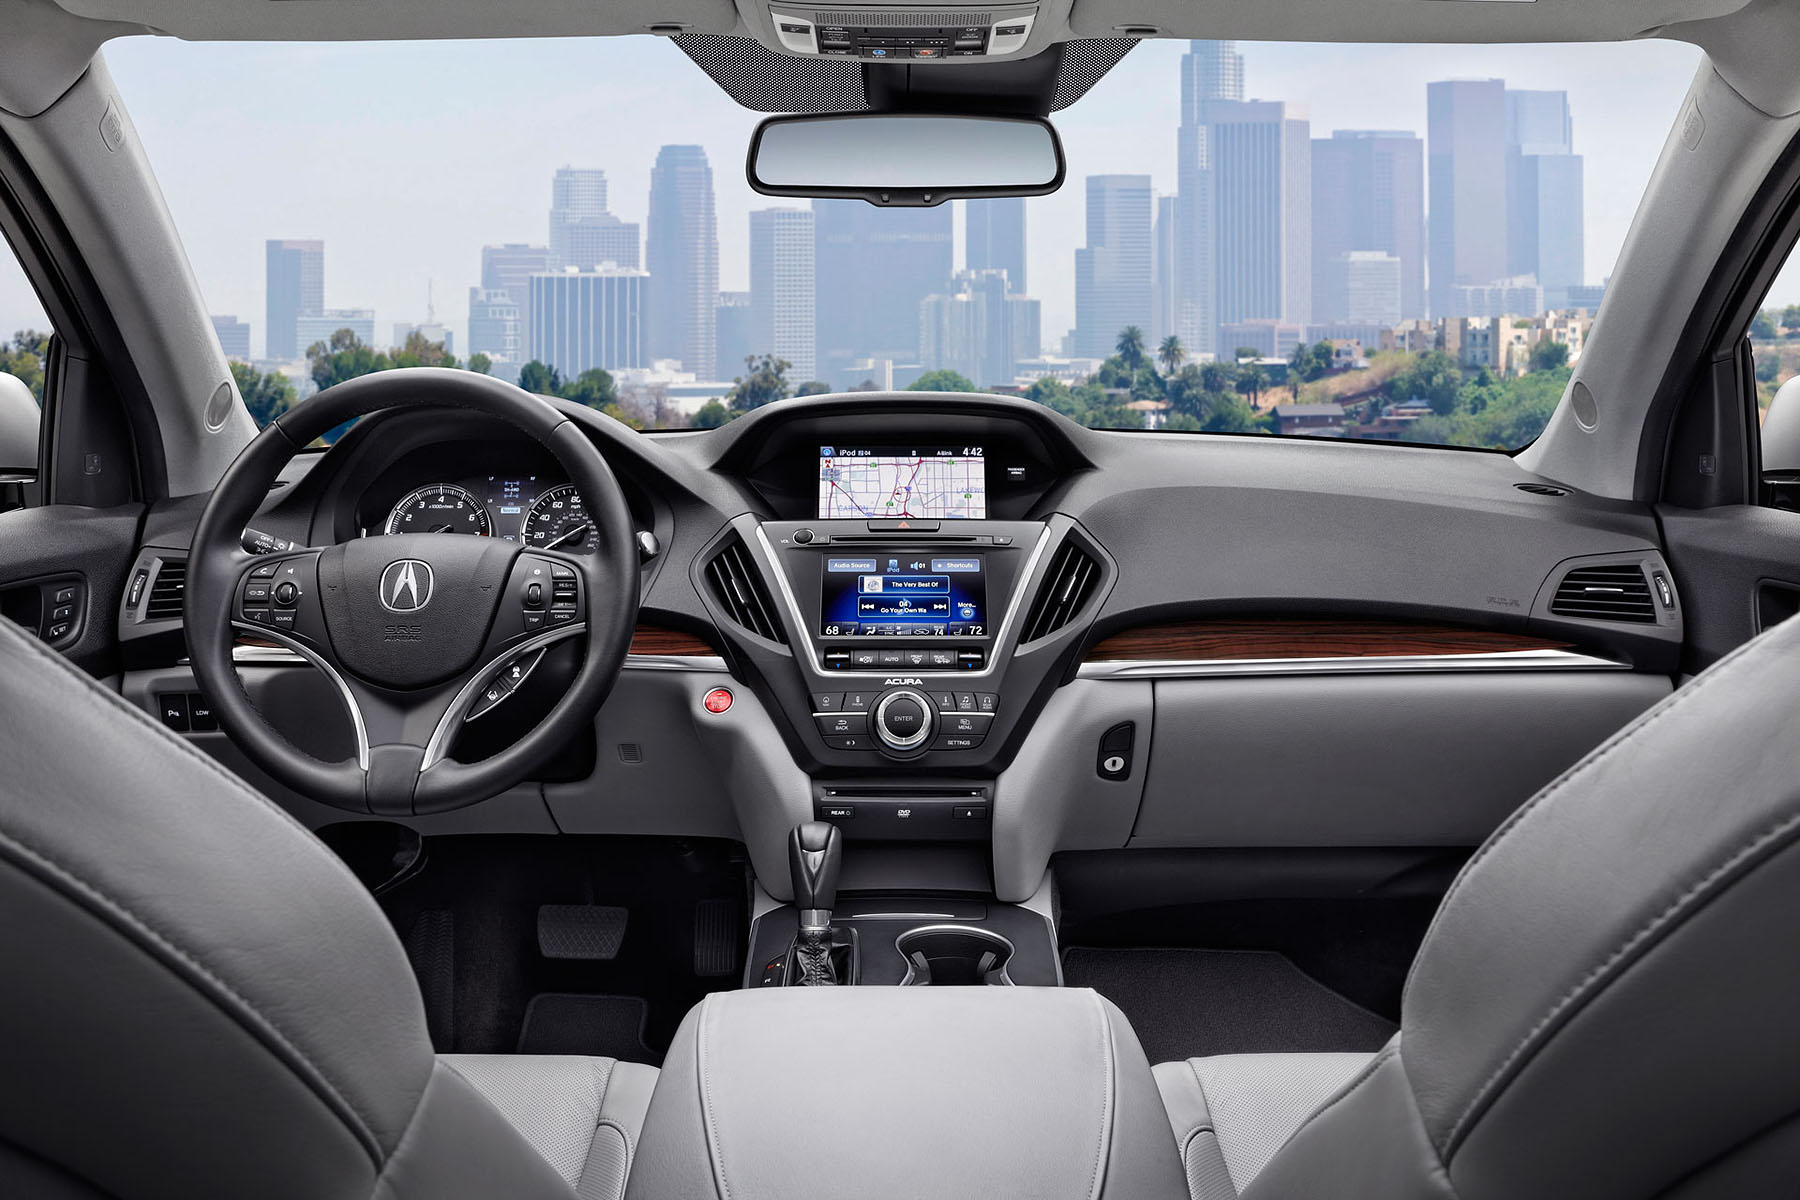 Acura interior Automotive Photography | Dovis Bird Agency Reps